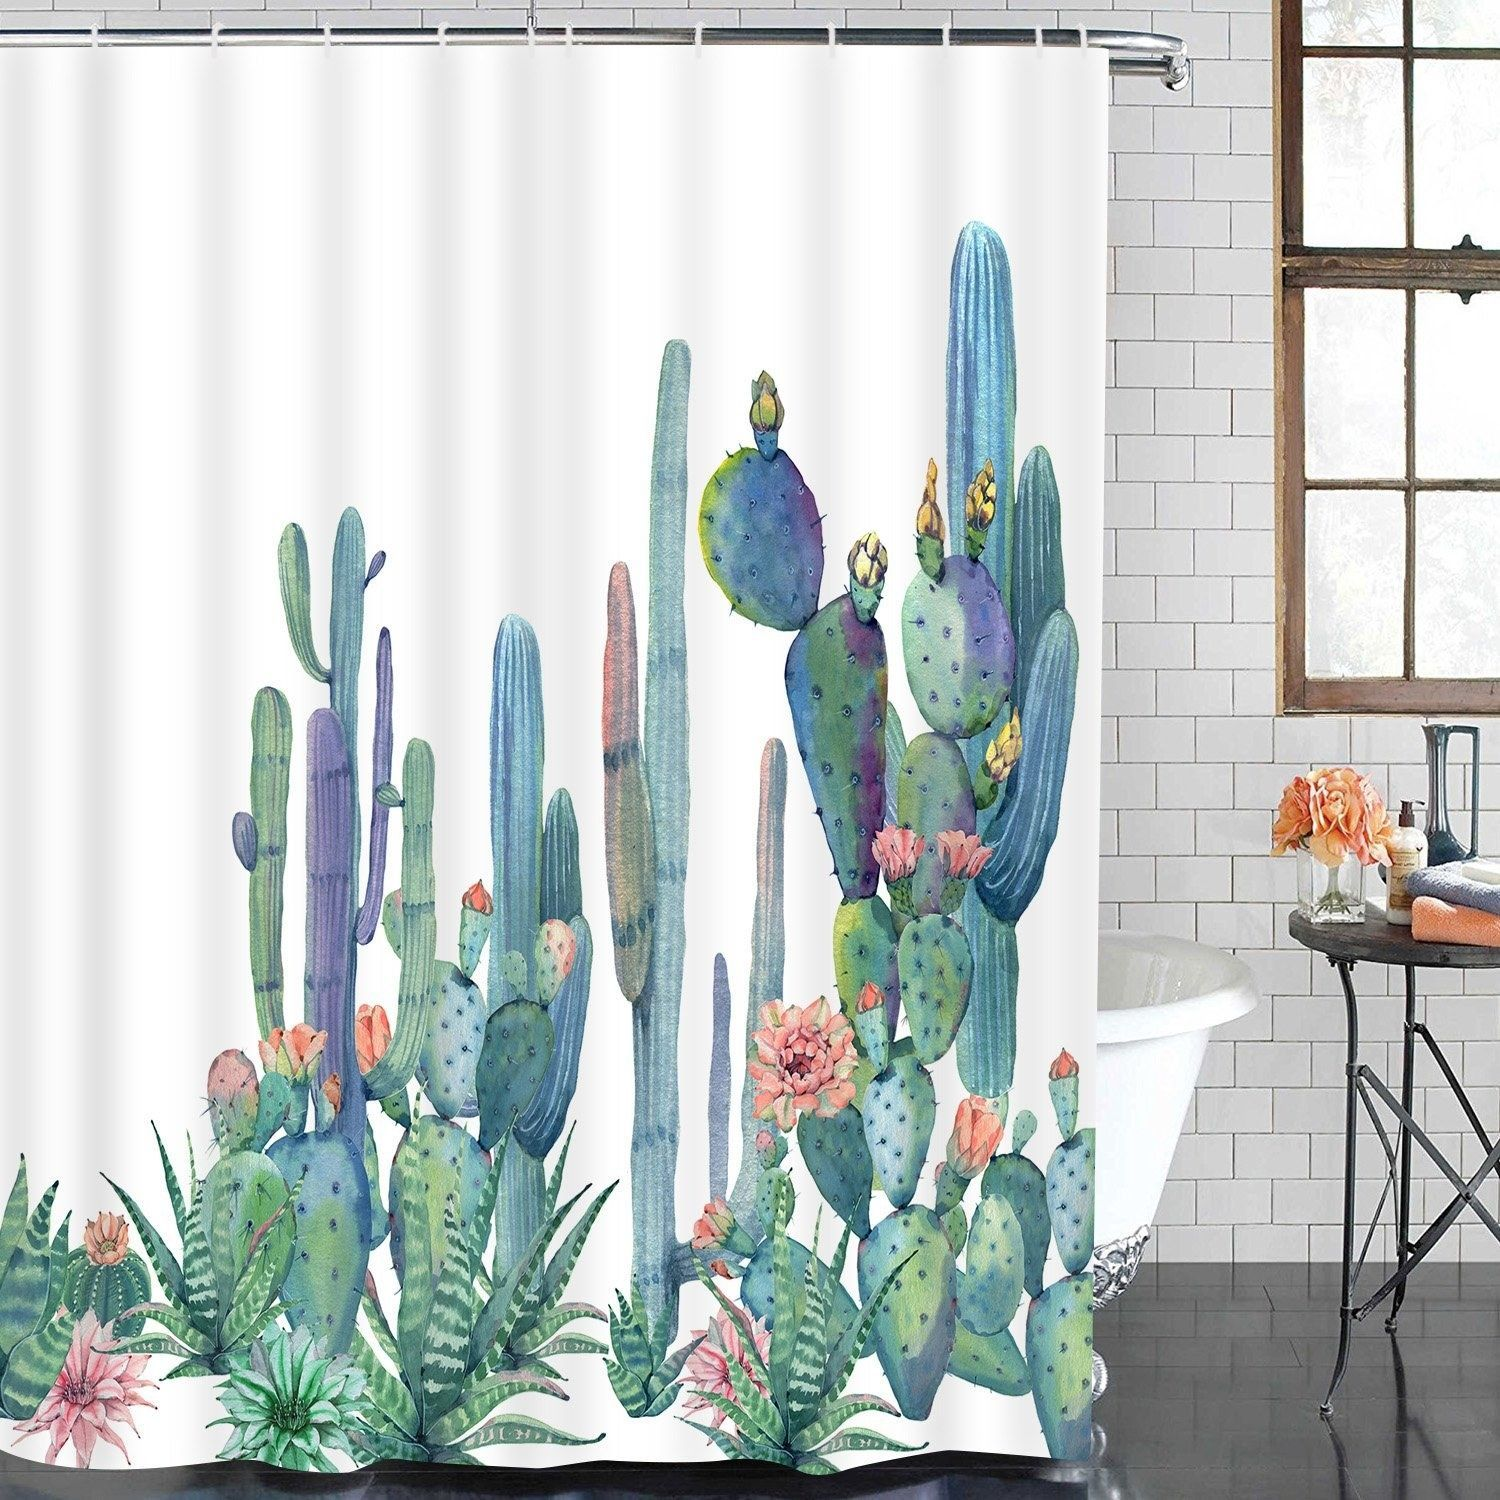 32 Things For Anyone With A Messy Shower Cactus Shower Curtain